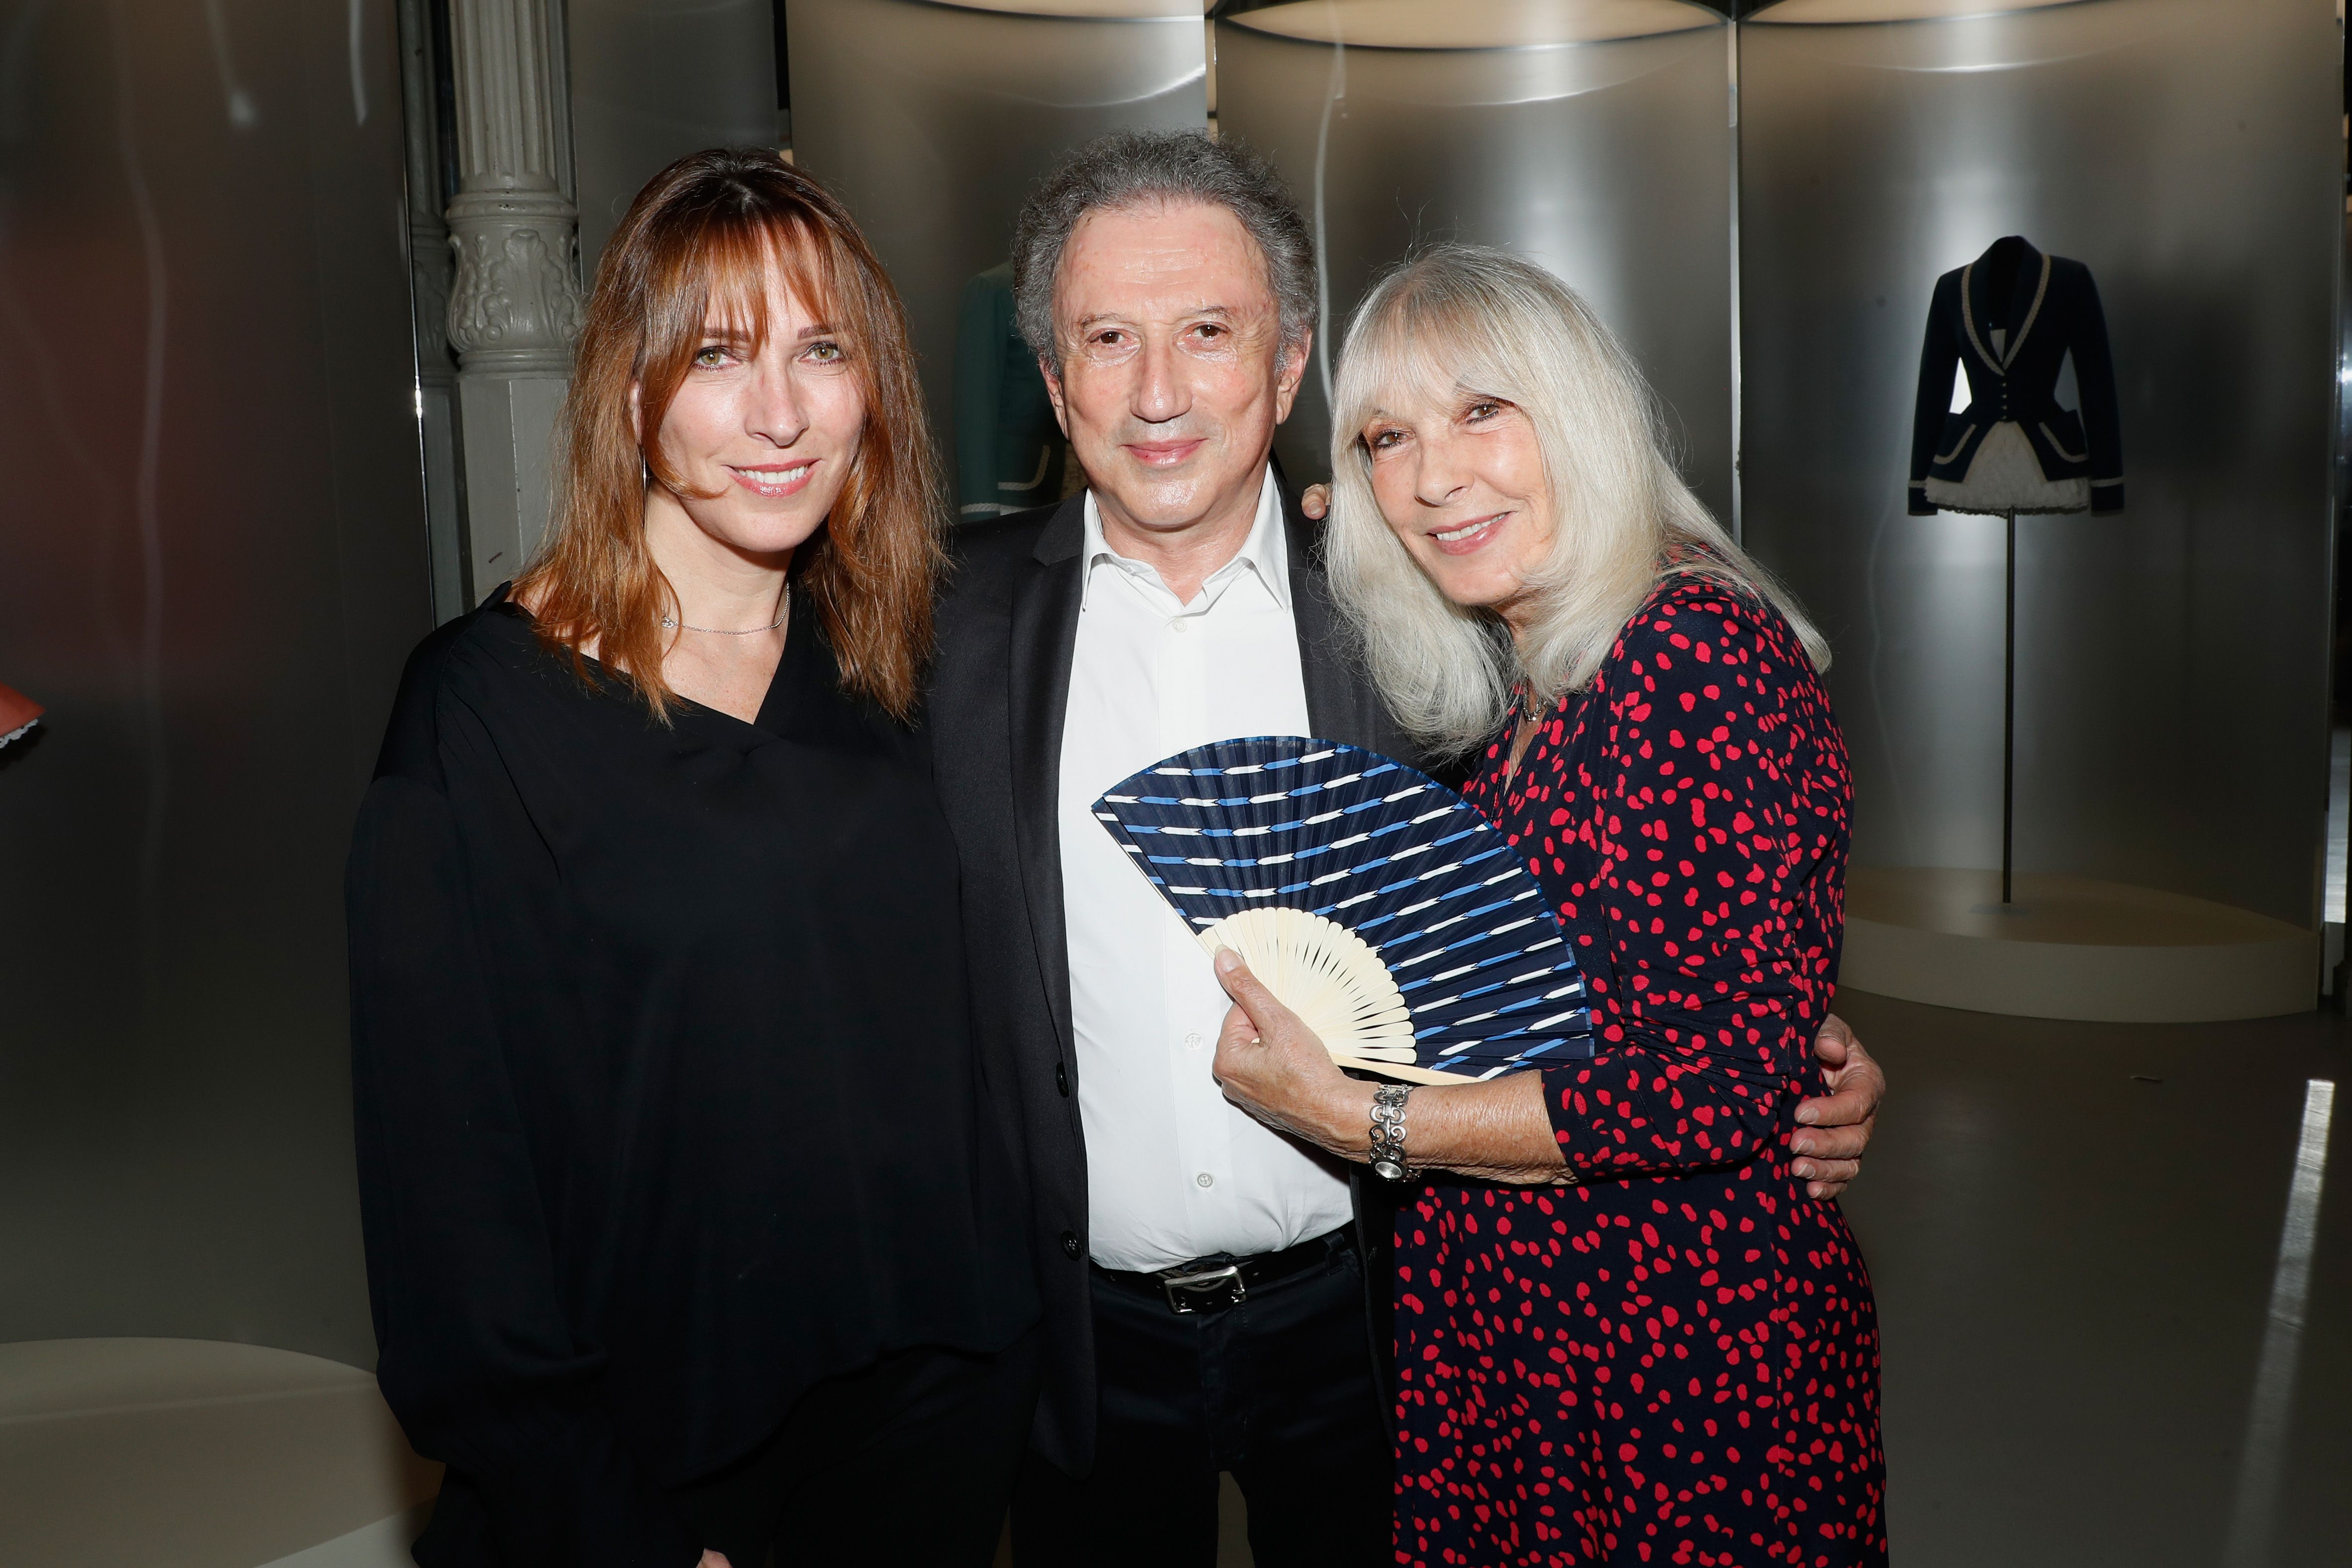 Stefanie Jarre, sa mère Dany Saval et Michel Drucker à la Galerie Azzedine Alaia le 1er juillet 2018 à Paris, France. | Photo : Getty Images